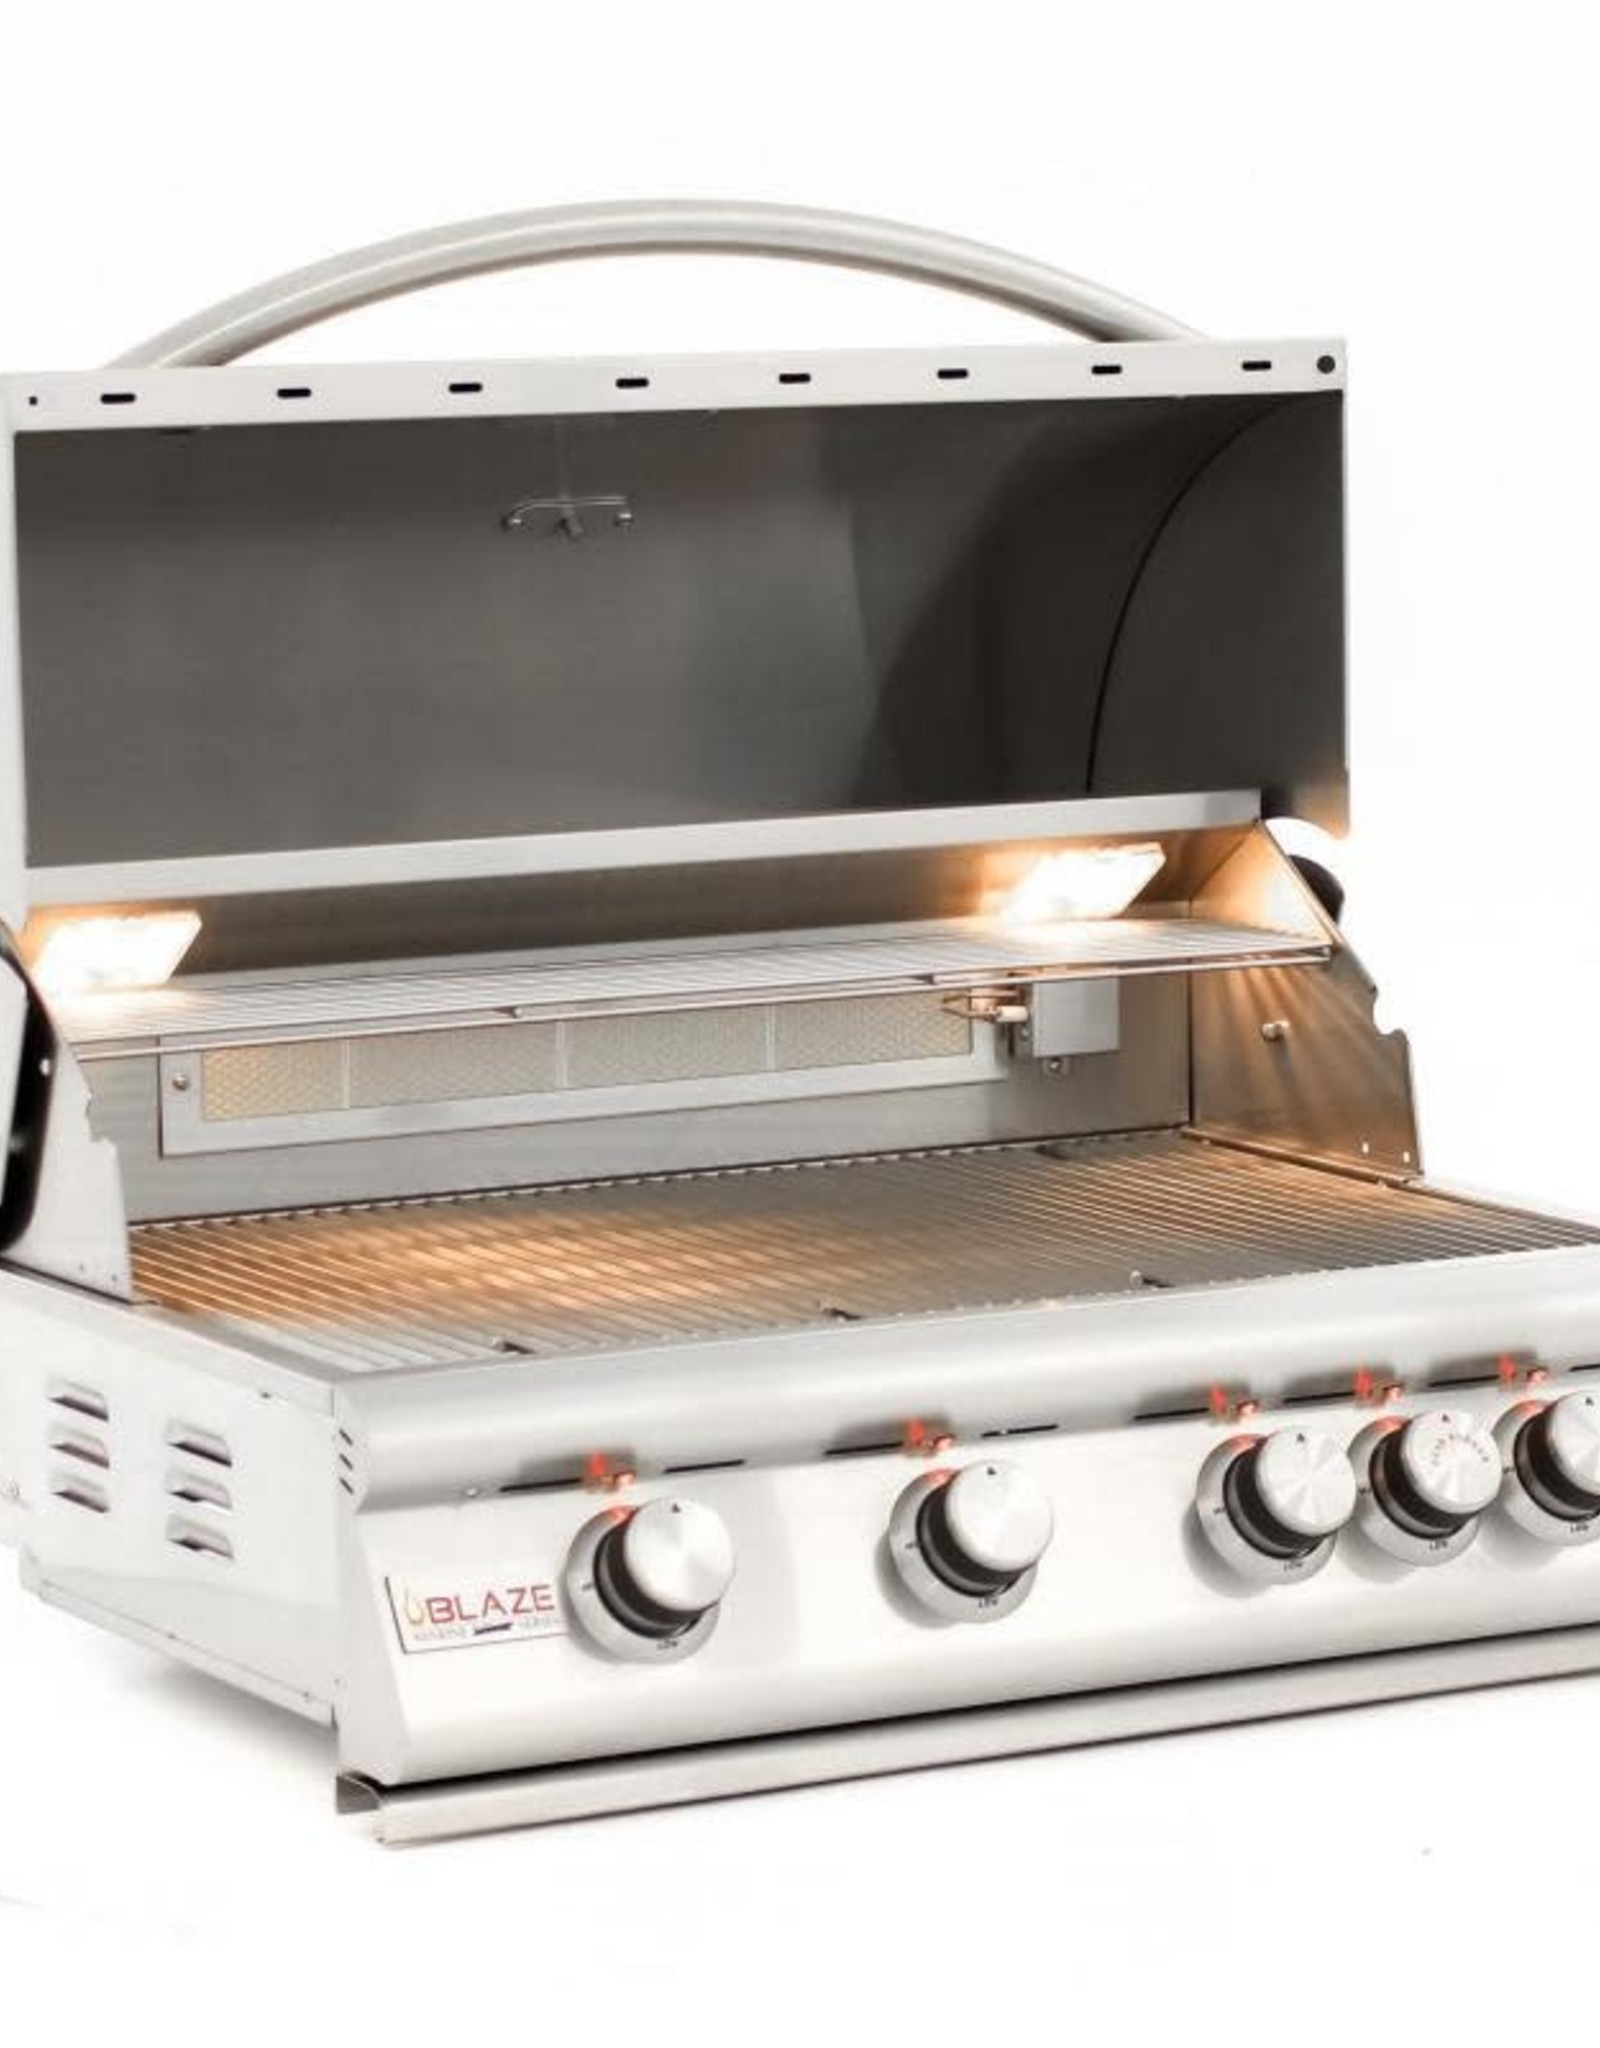 Blaze Outdoor Products Blaze LTE Marine Grade 32-Inch 4-Burner Built-In Natural Gas Grill With Rear Infrared Burner & Grill Lights - BLZ-4LTE2MG-NG